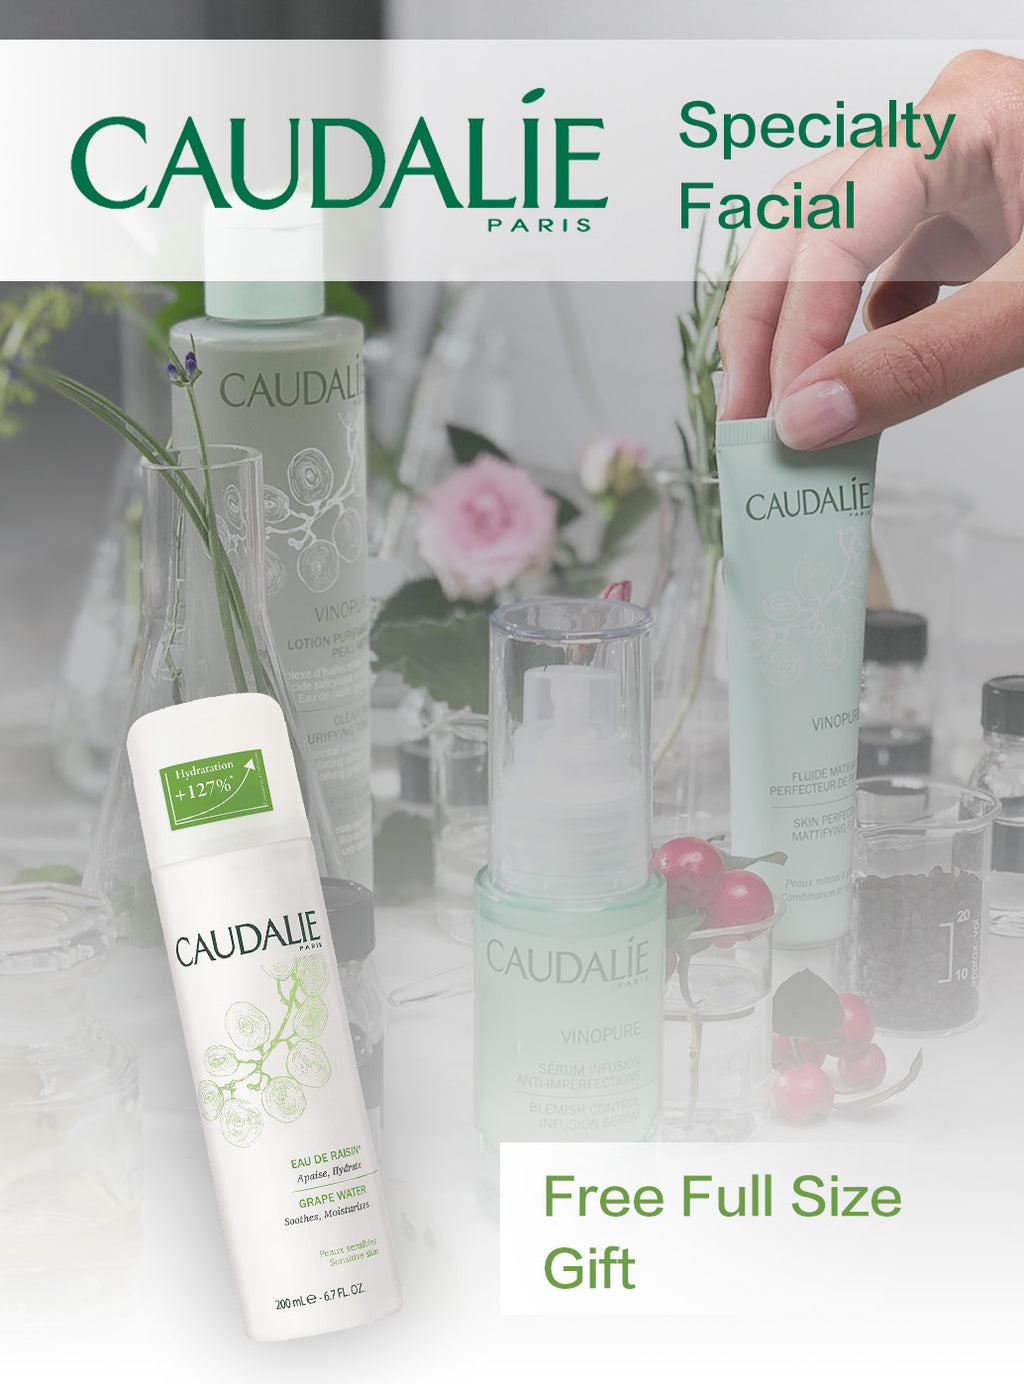 Caudalie Luxury Specialty Facial + Full Size Gift